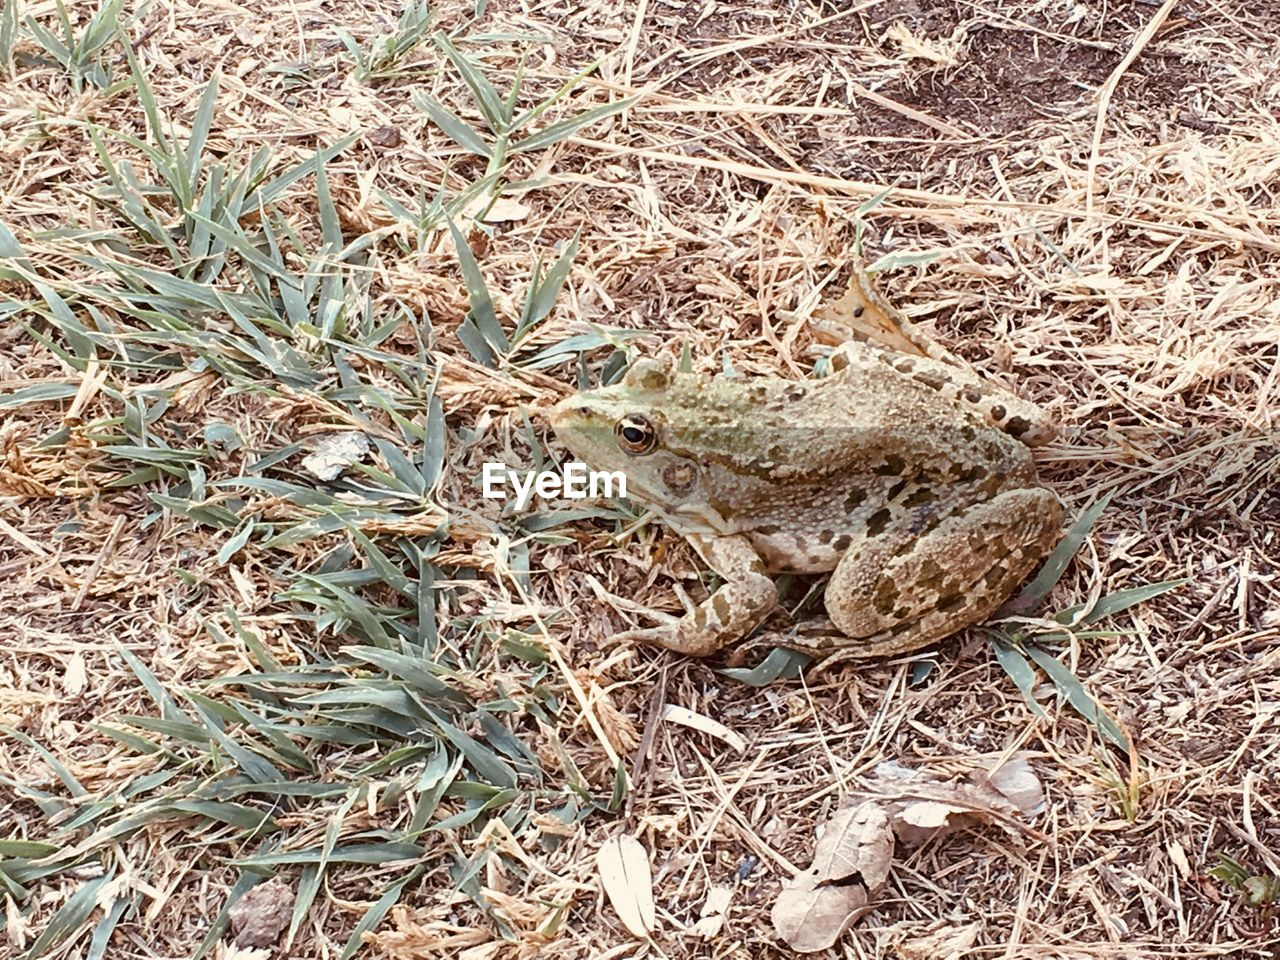 animal wildlife, animal themes, animals in the wild, animal, one animal, vertebrate, high angle view, nature, reptile, land, no people, plant, day, field, snake, lizard, frog, amphibian, grass, plant part, outdoors, poisonous, animal head